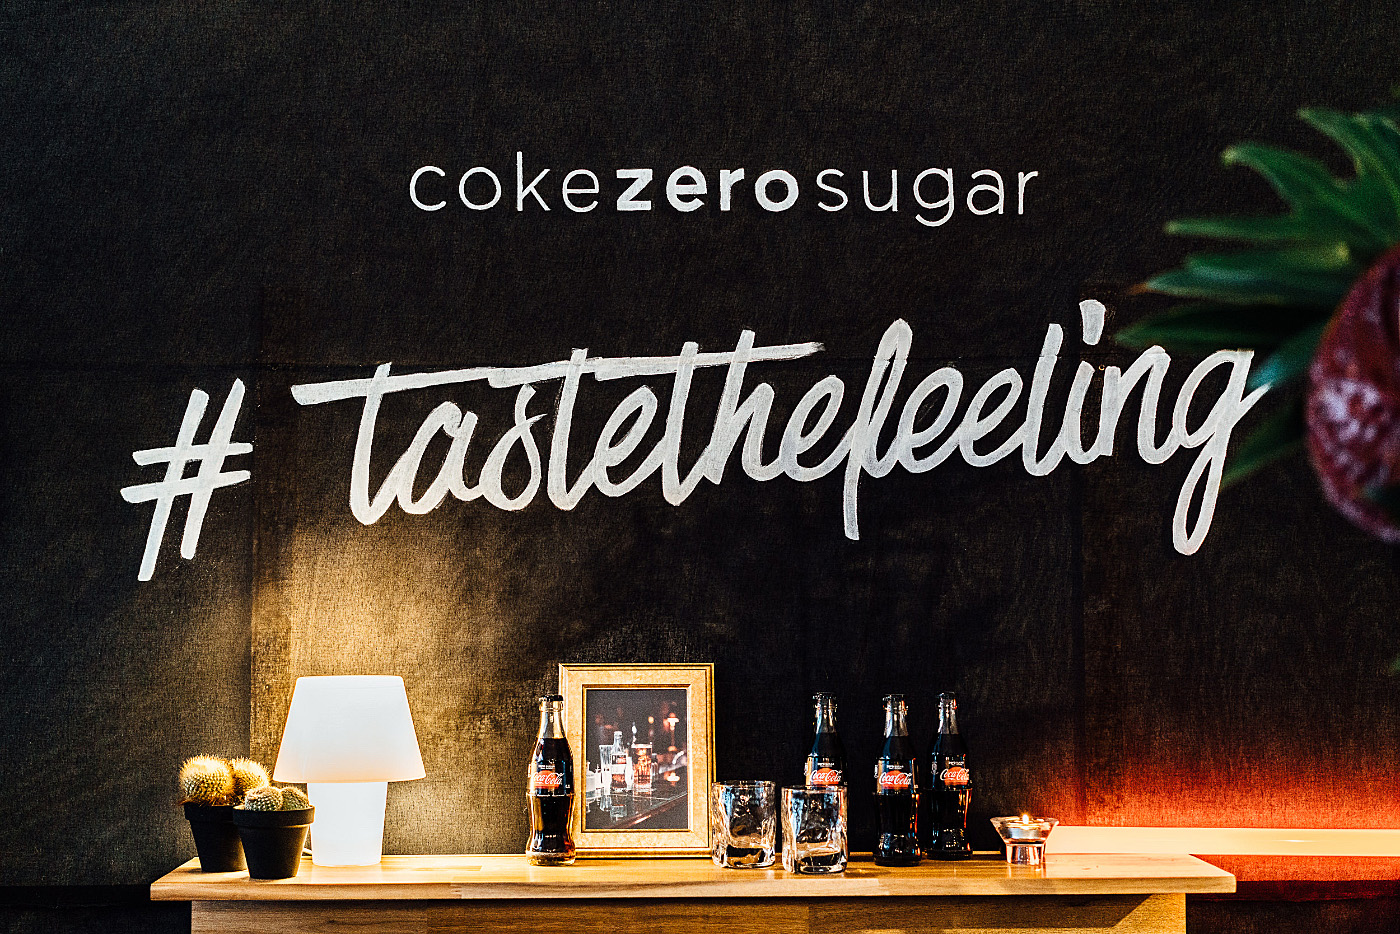 coke zero sugar taste the feeling event #tastethefeeling in berlin The Golden Bun